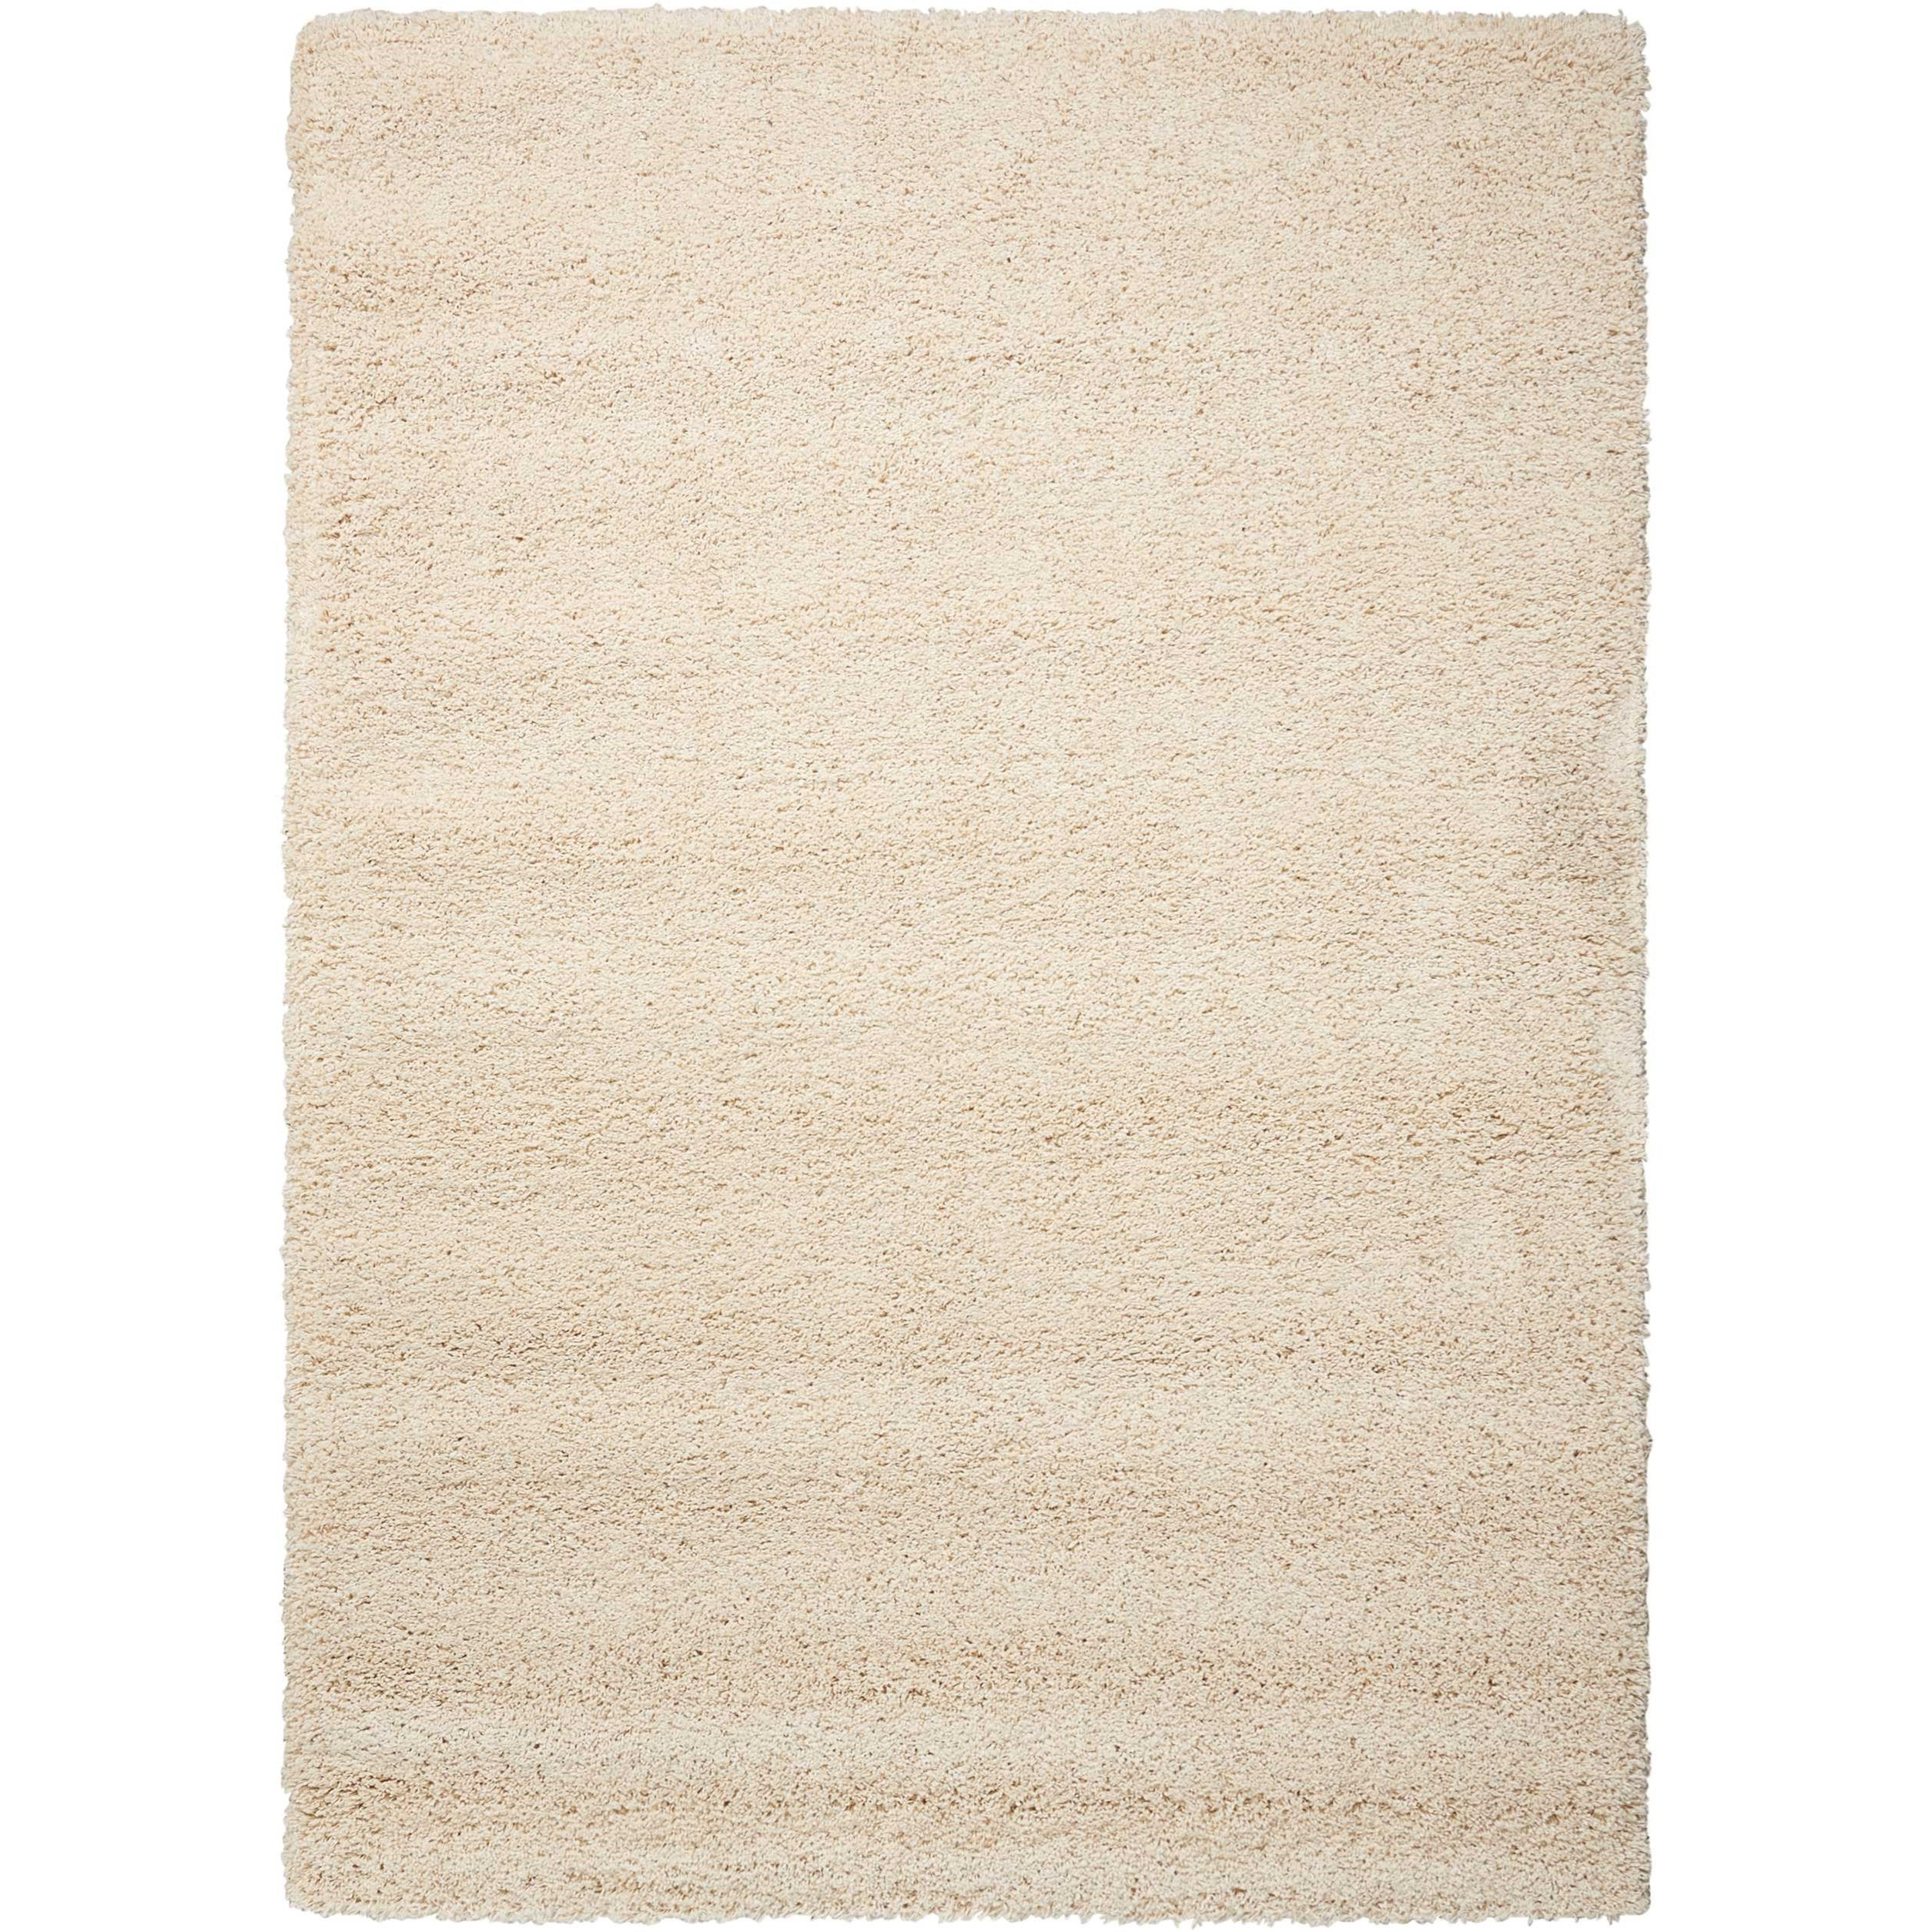 """Amore 5'3"""" x 7'5"""" Cream Rectangle Rug by Nourison at Home Collections Furniture"""